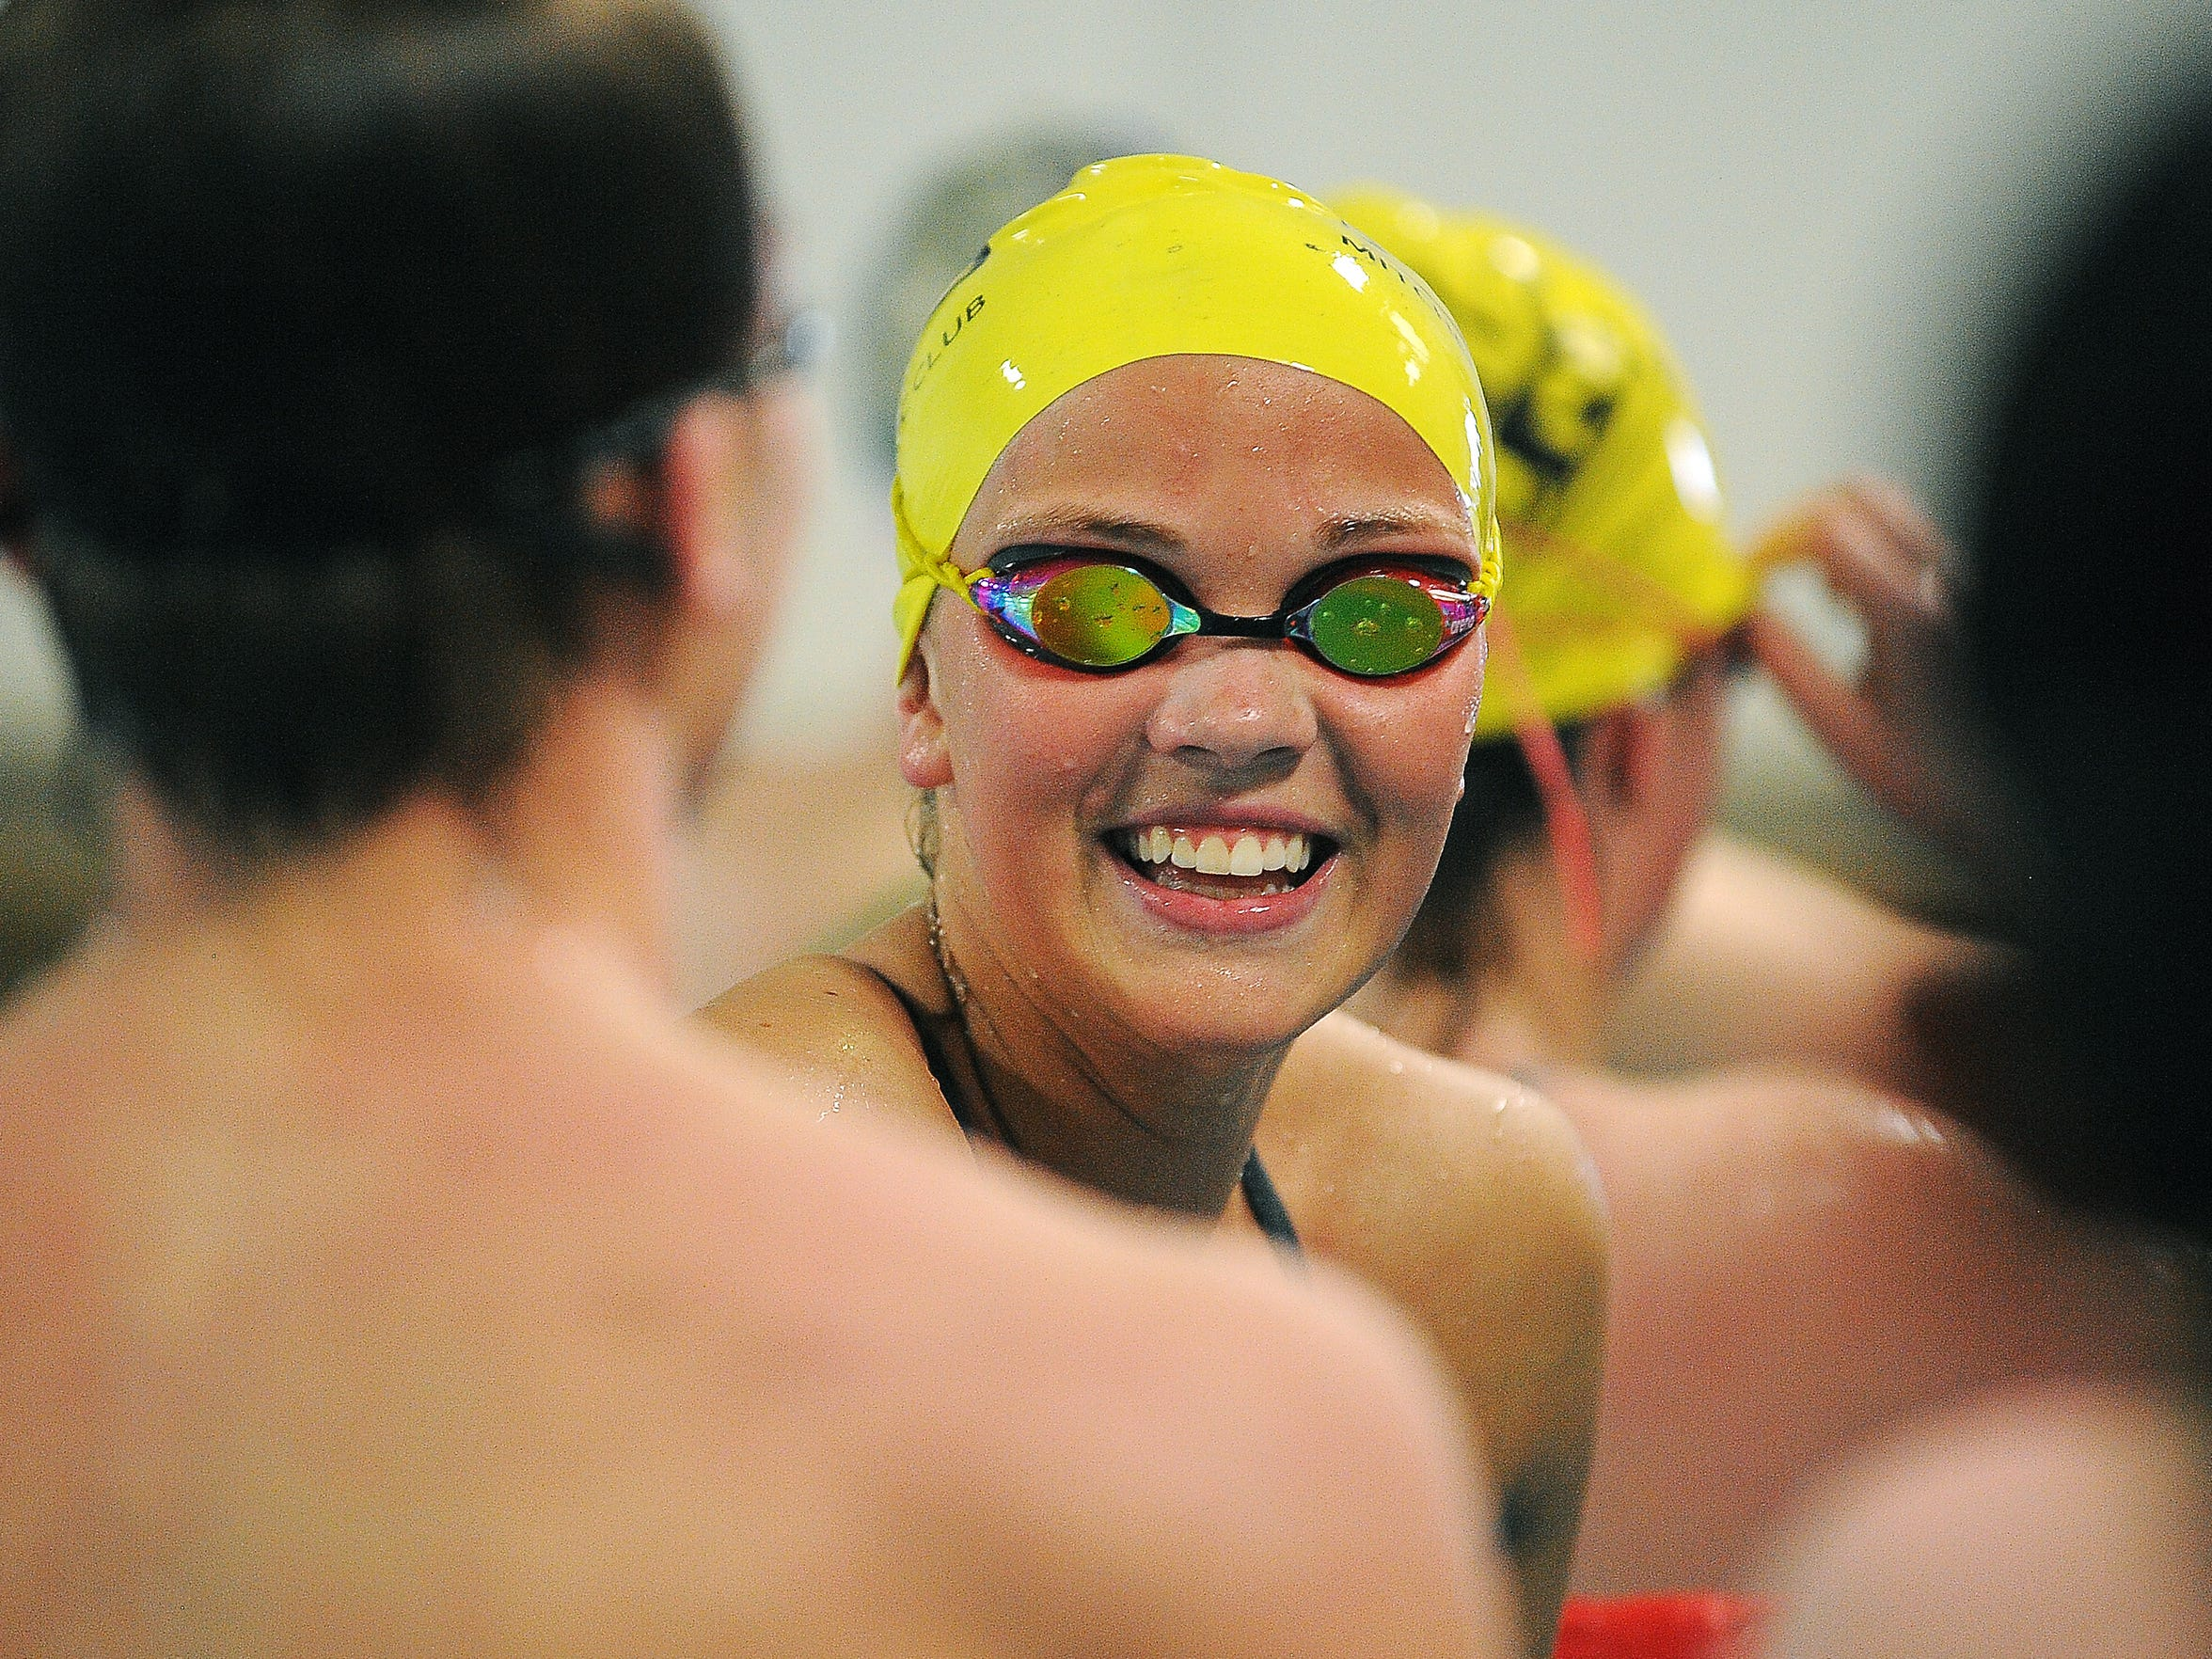 Tevyn Waddell, 16, cracks a smile while talking to teammates during a Mitchell Aquatic Club practice on Thursday, April 23, 2015, at the Mitchell Aquatic Club in Mitchell, S.D.